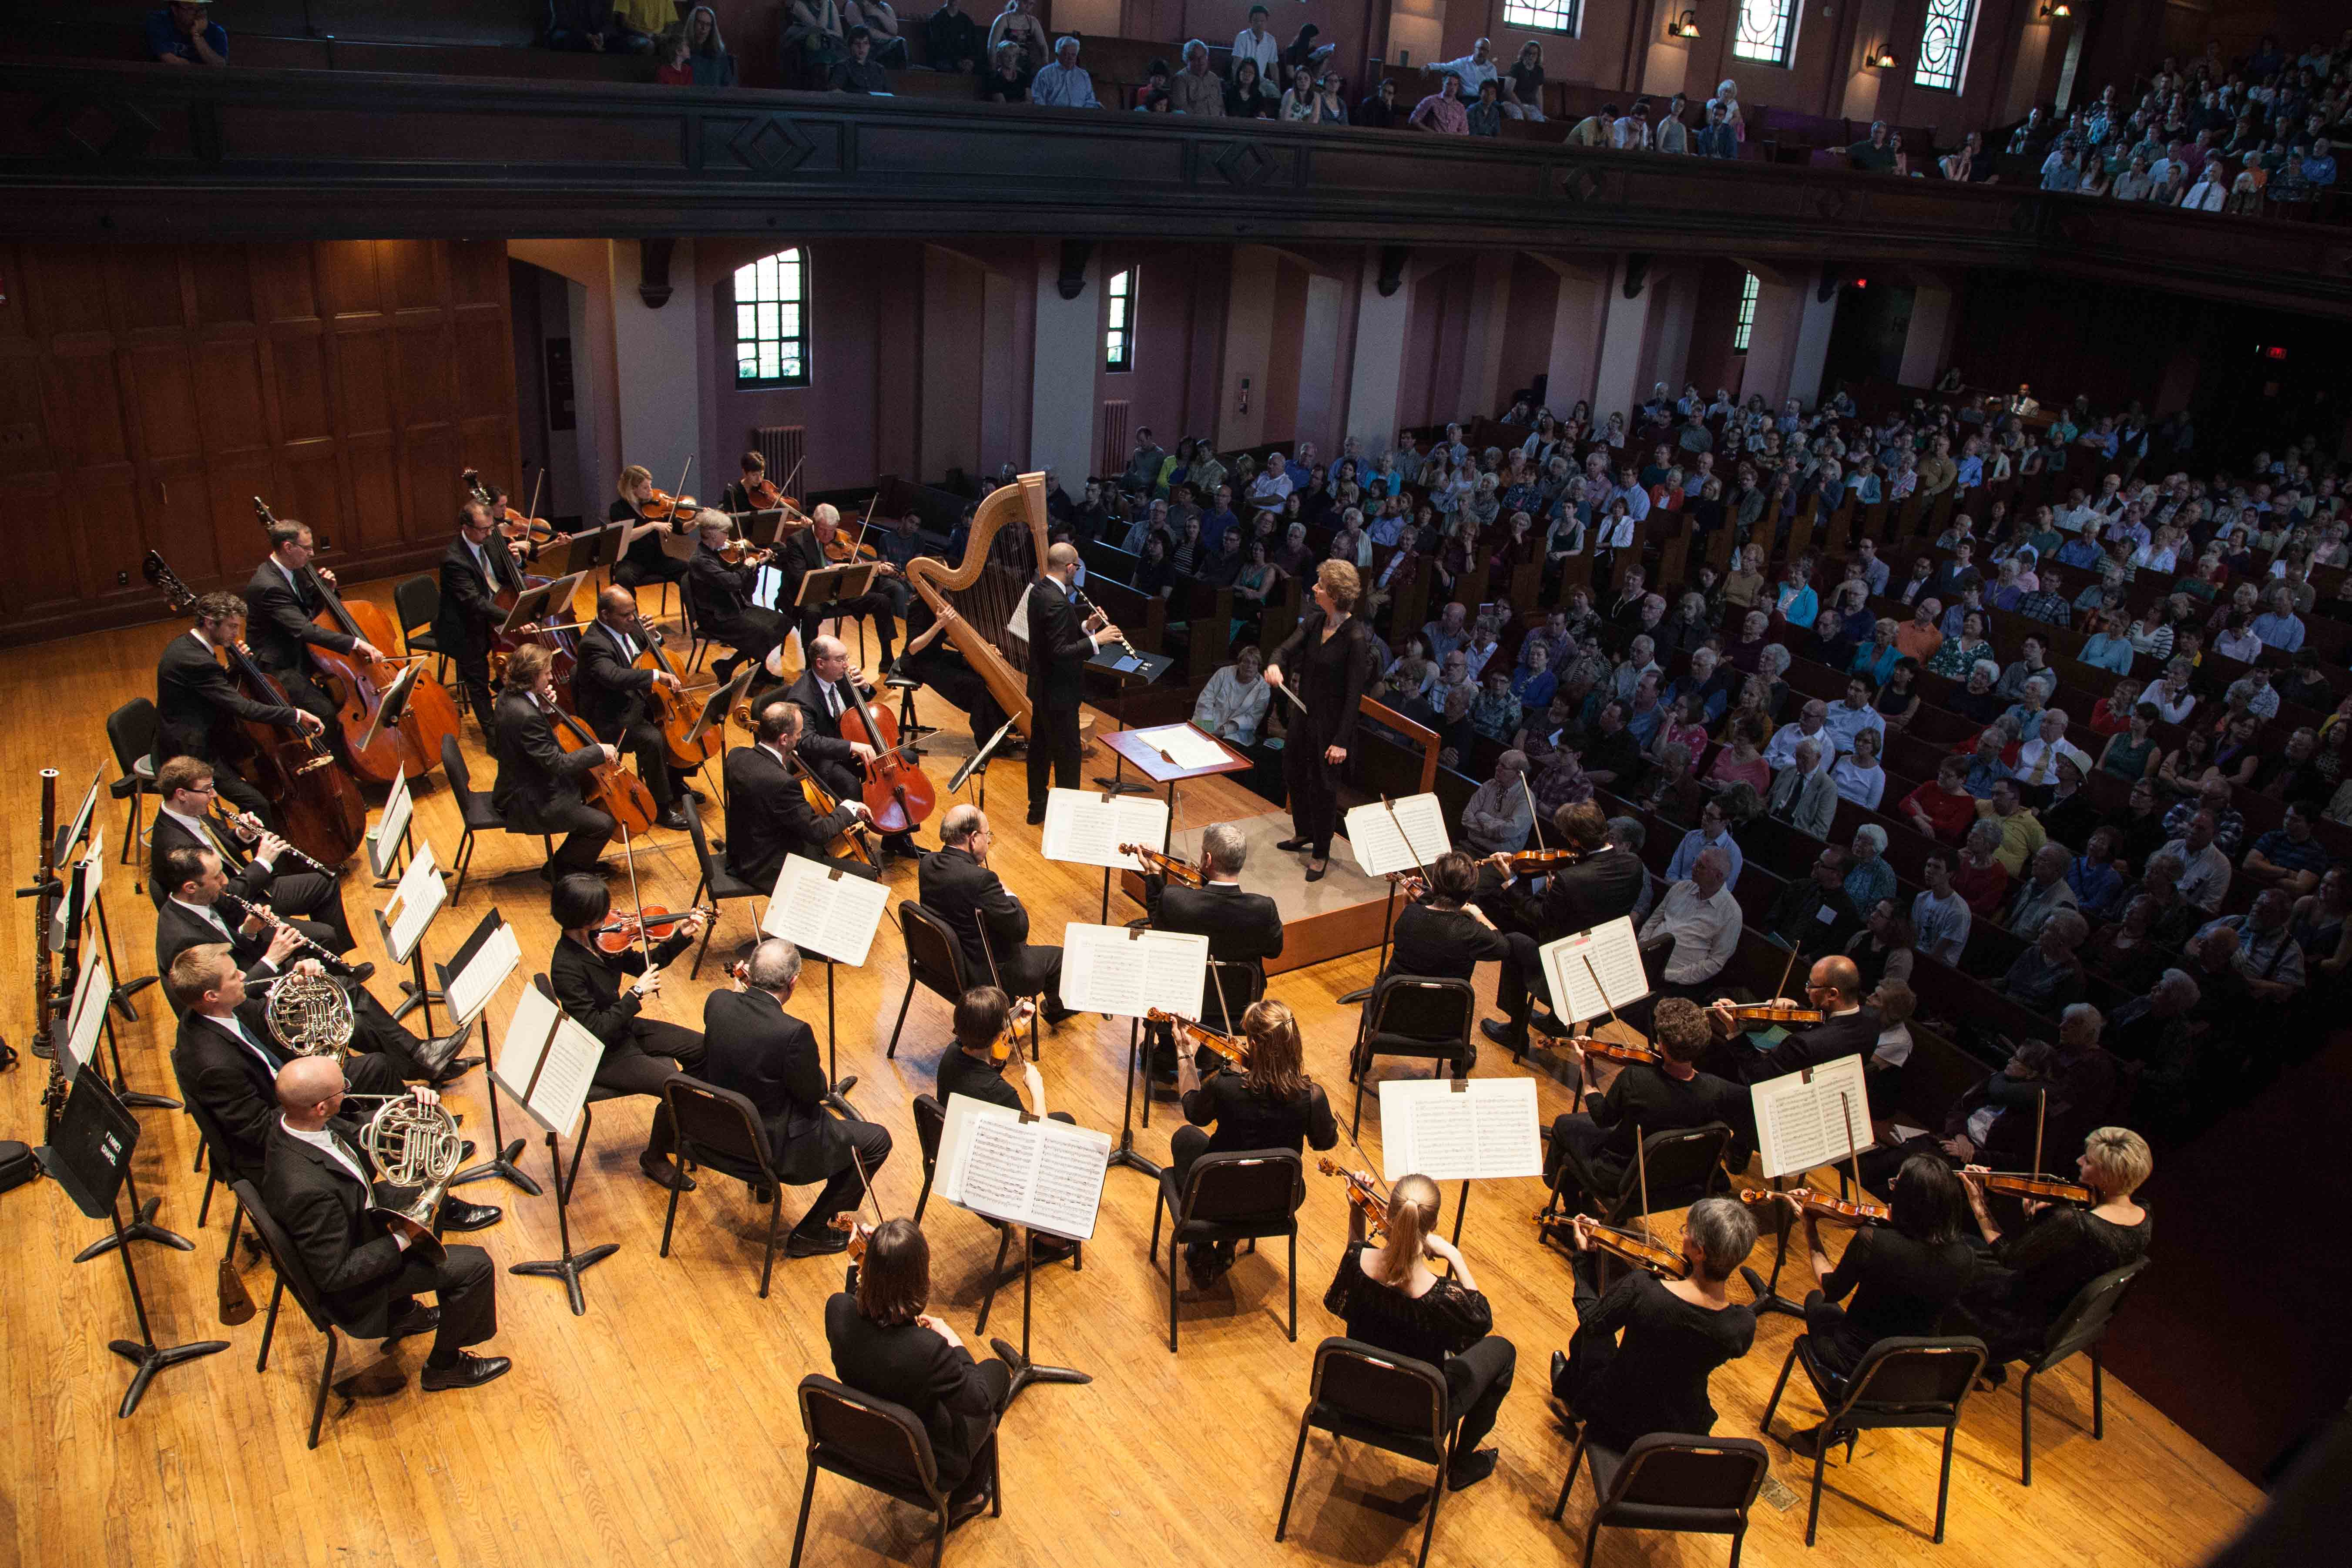 Jane Glover conducts the Cleveland Orchestra in Finney Chapel Sunday. The concert's program featured renowned compositions by Haydn and Mozart.